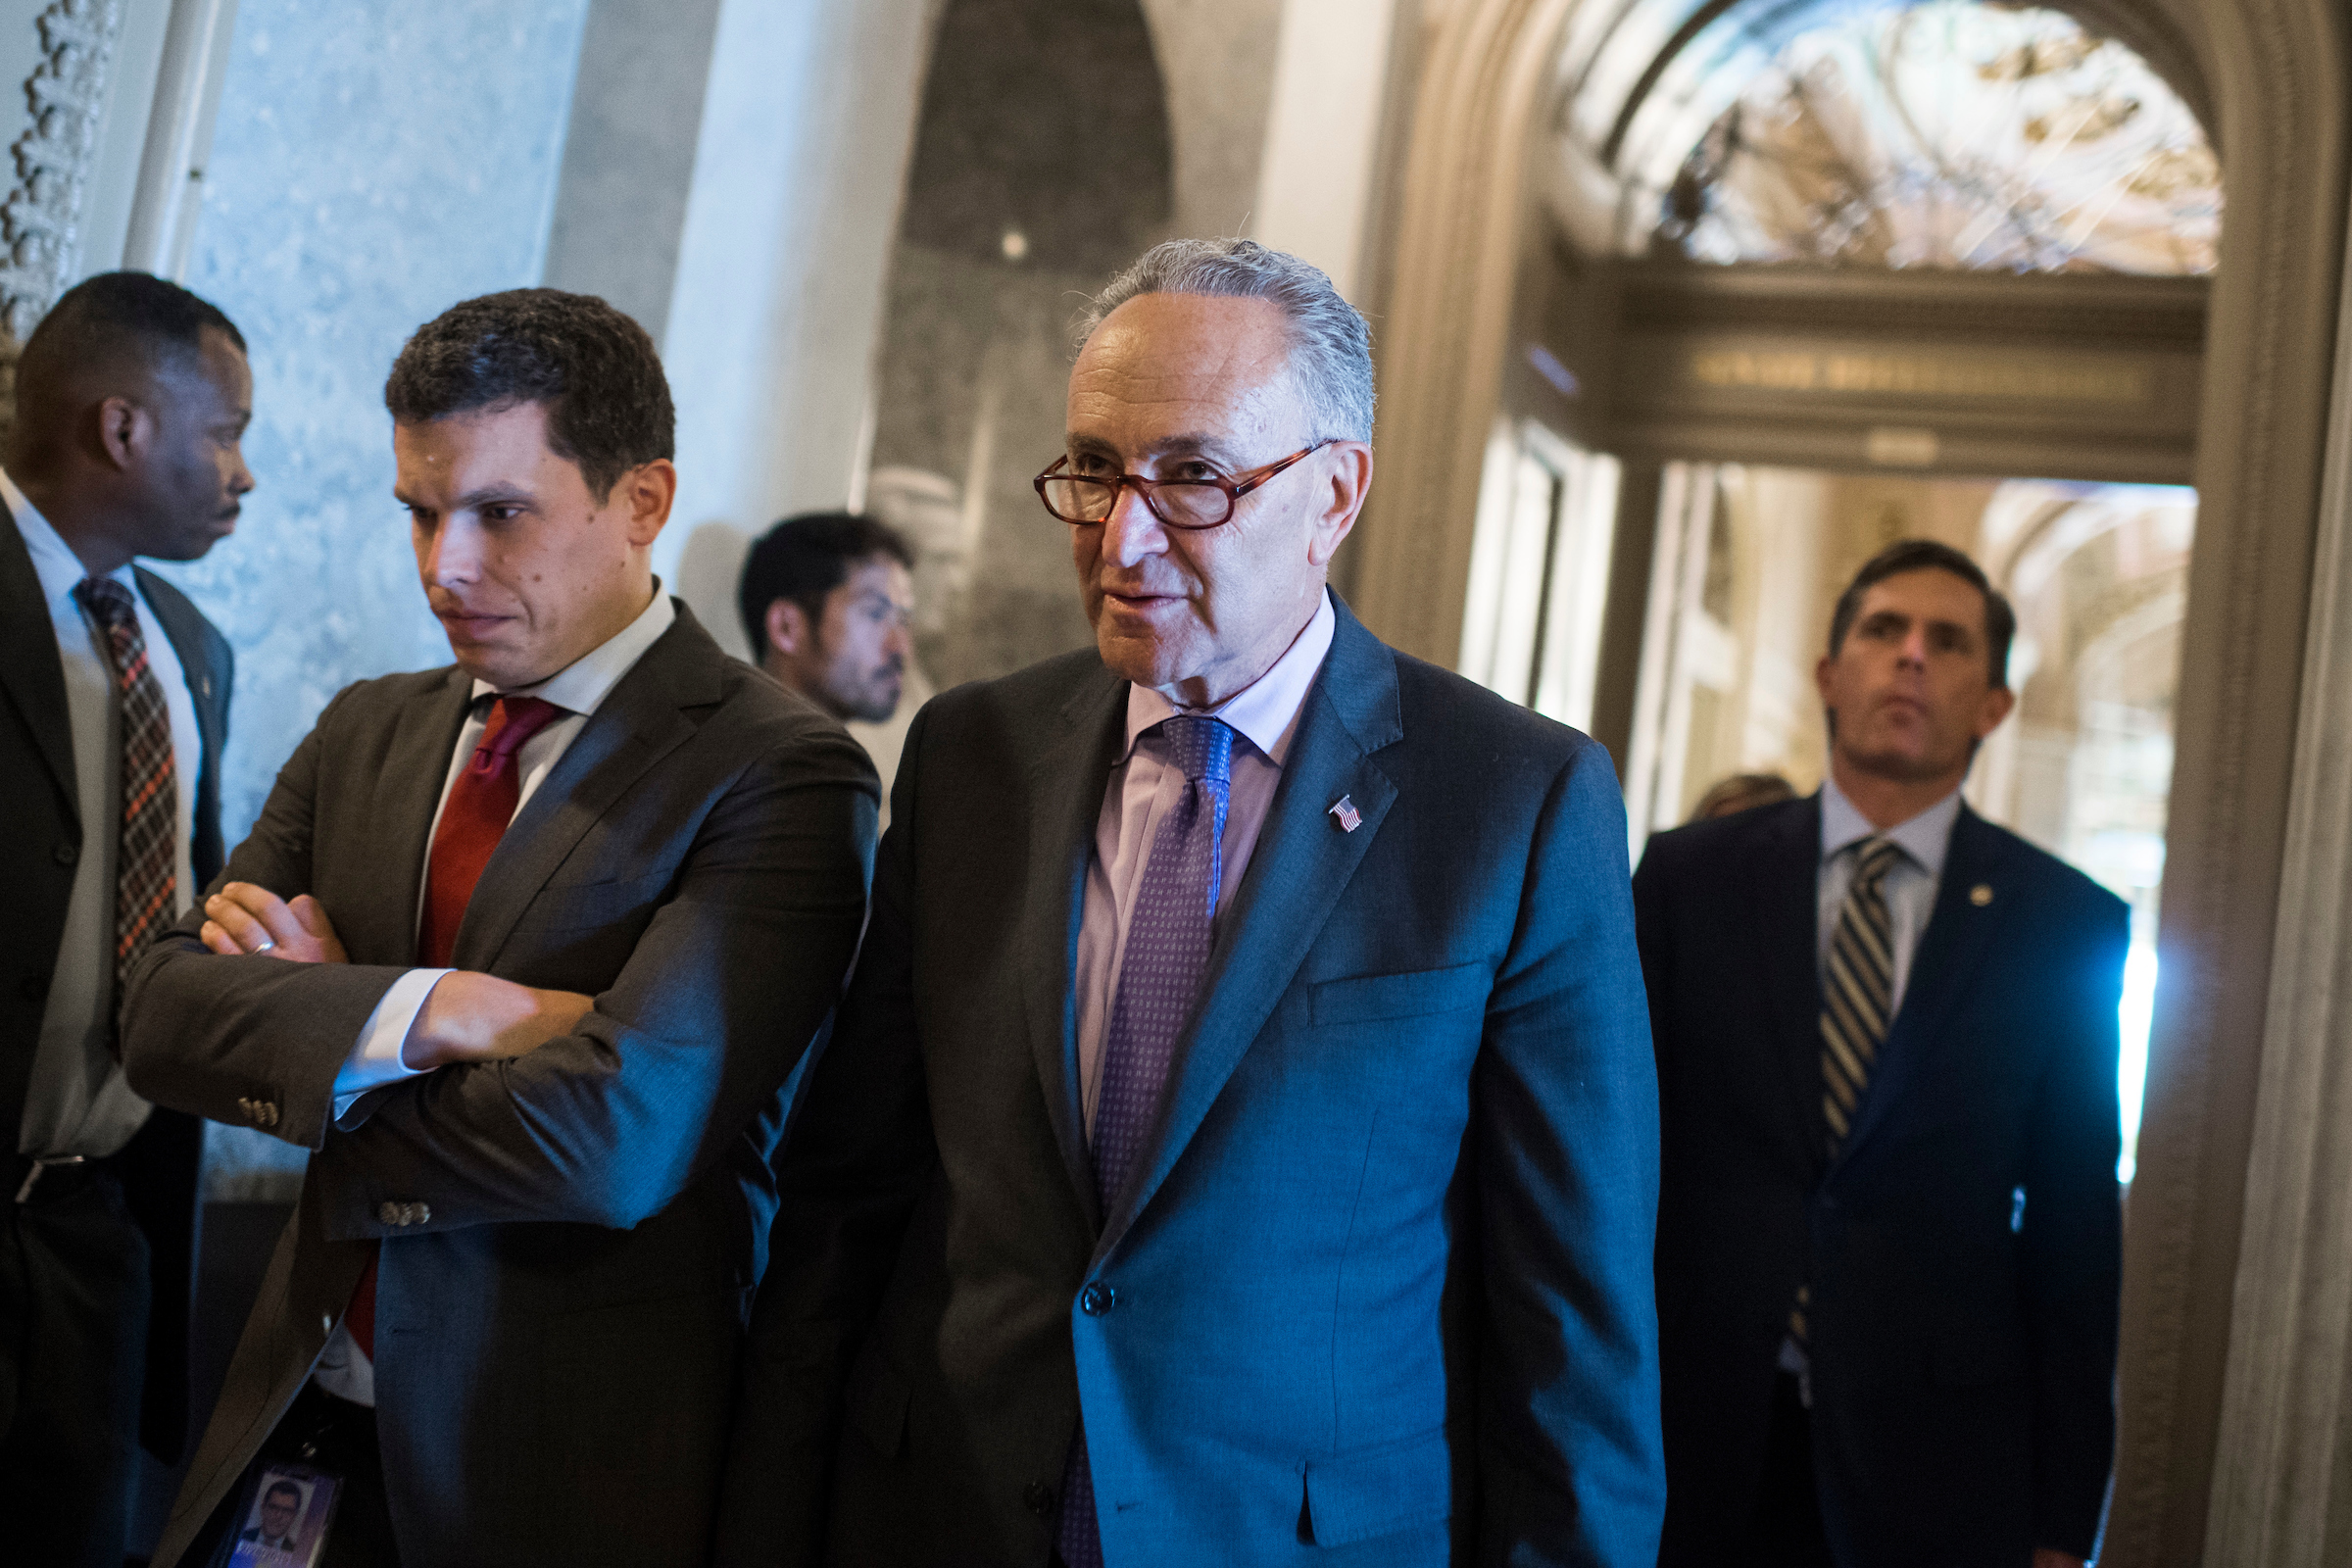 UNITED STATES - JULY 18: Senate Minority Leader Charles Schumer, D-N.Y., makes his way to a news conference after the Senate Policy Luncheons in the Capitol on July 18, 2017. (Photo By Tom Williams/CQ Roll Call)